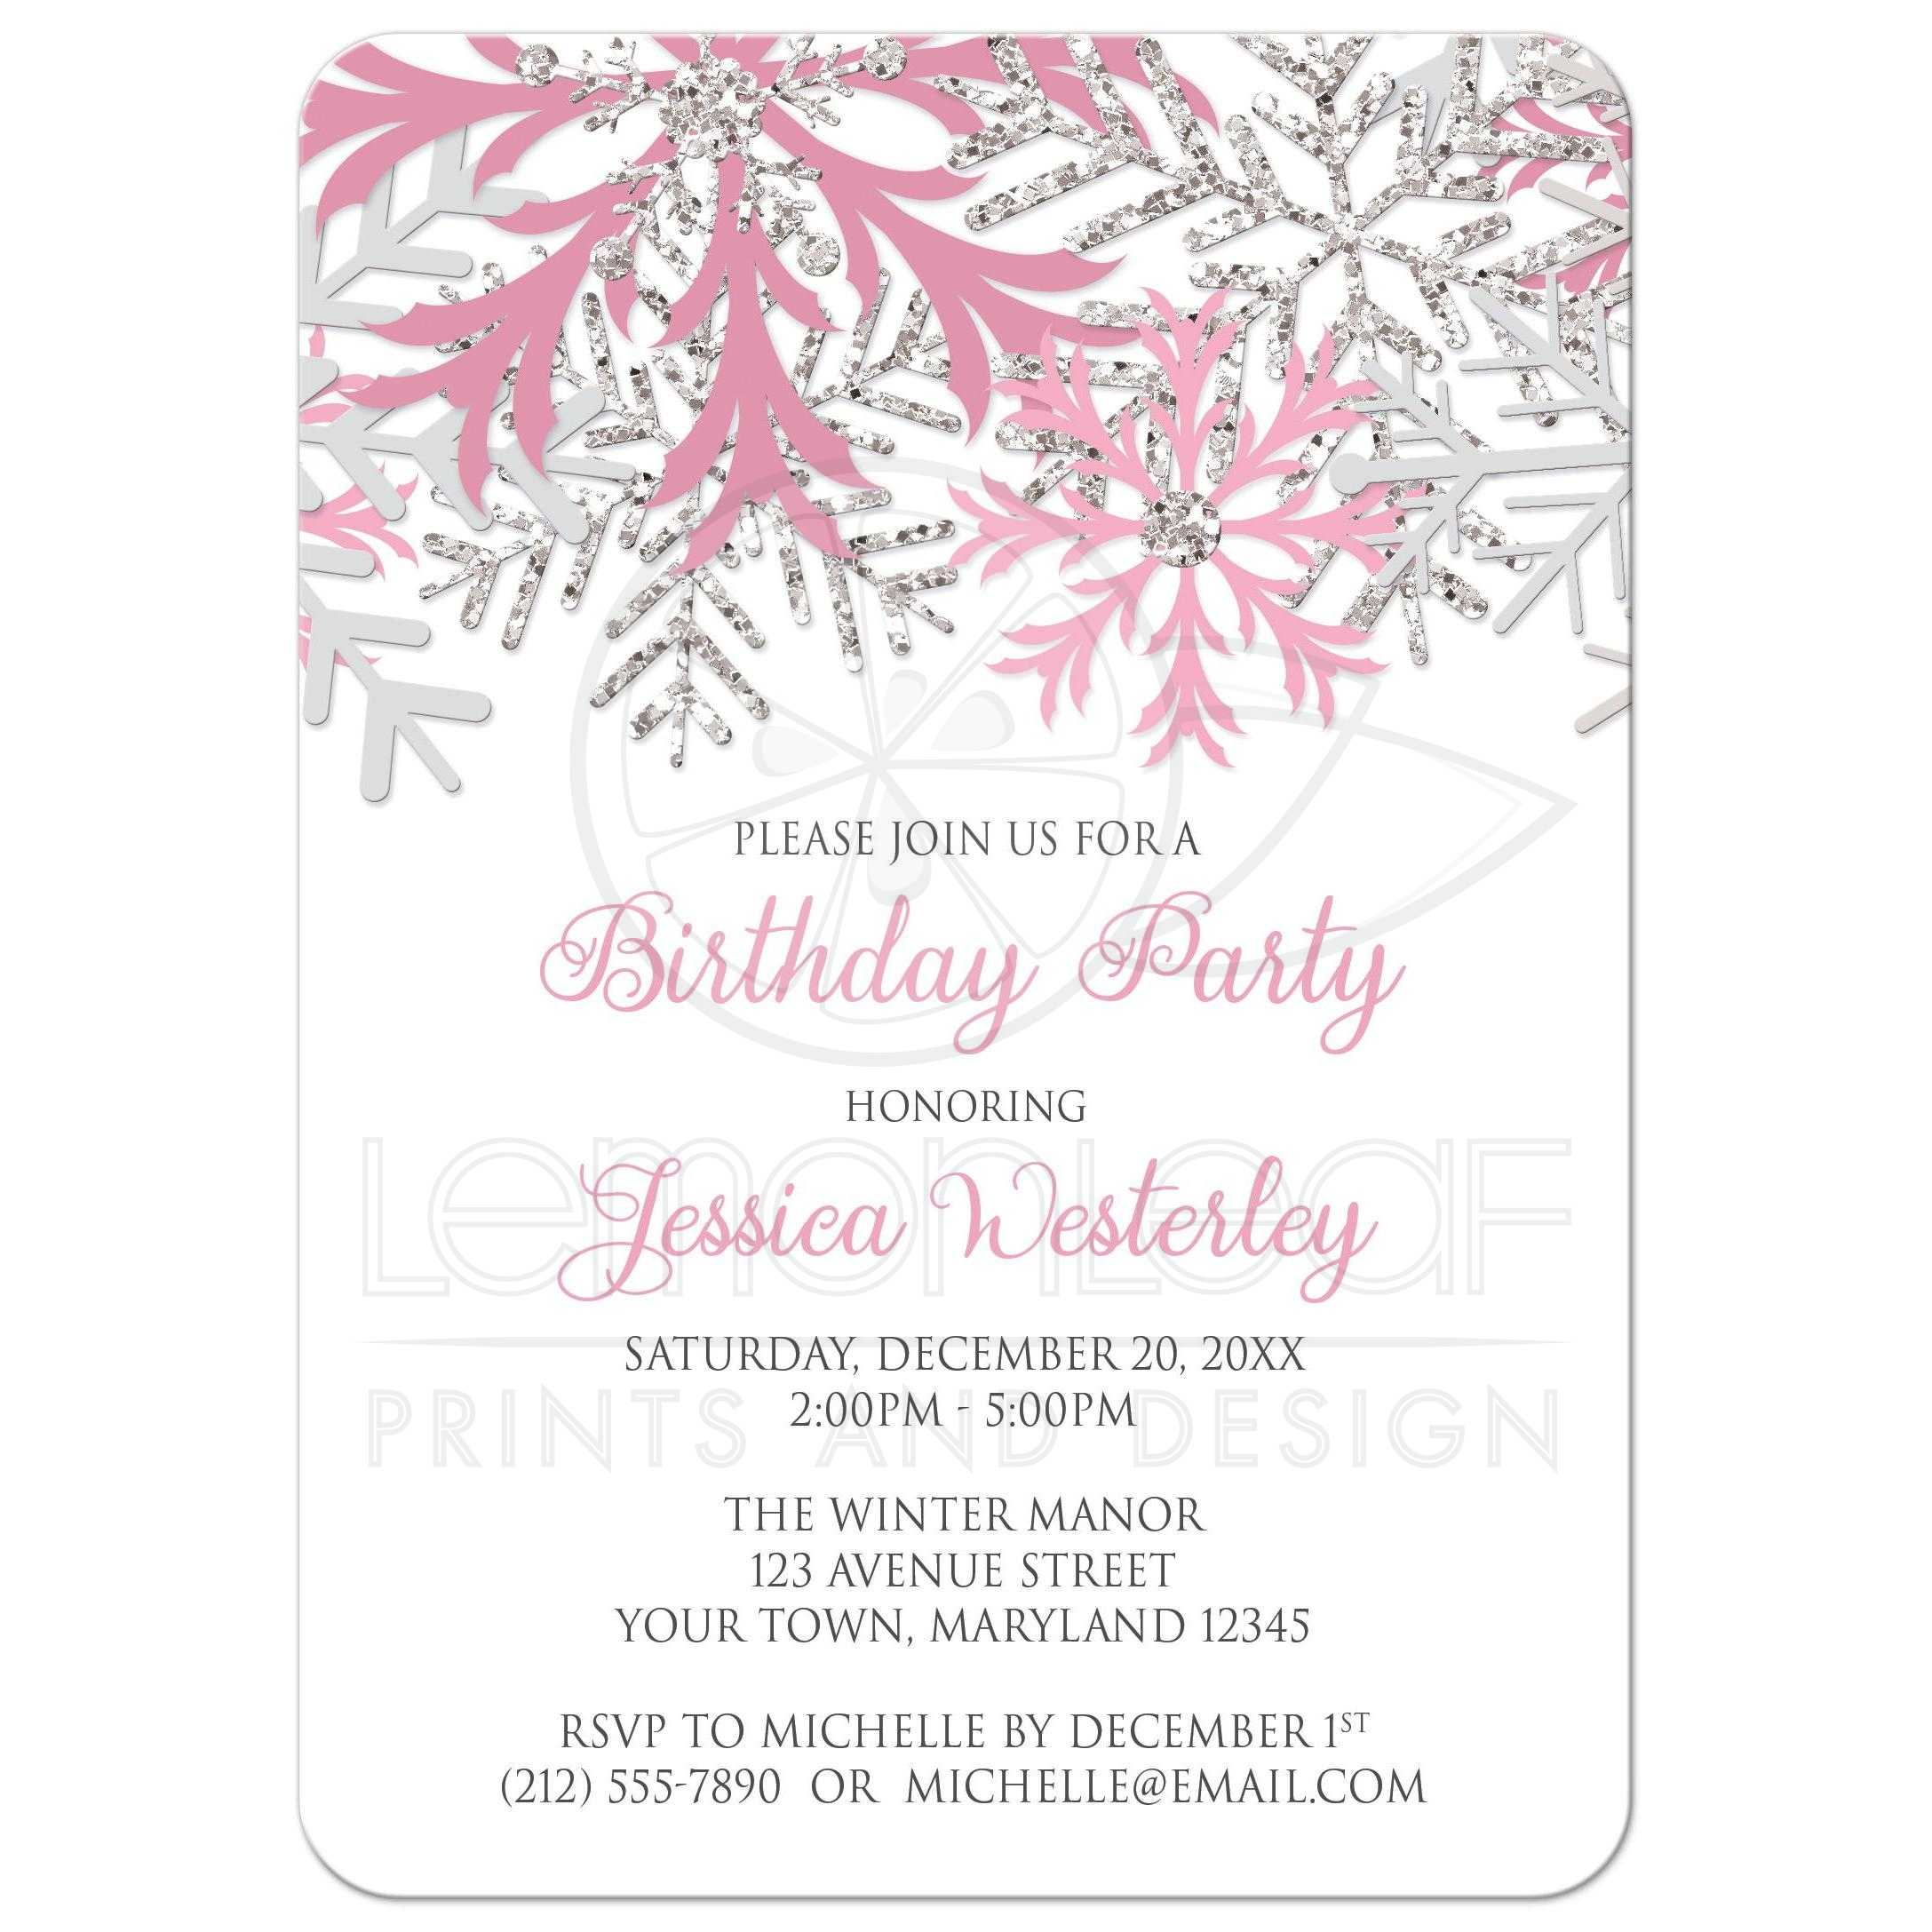 Birthday Invitations - Winter Snowflake Pink Silver